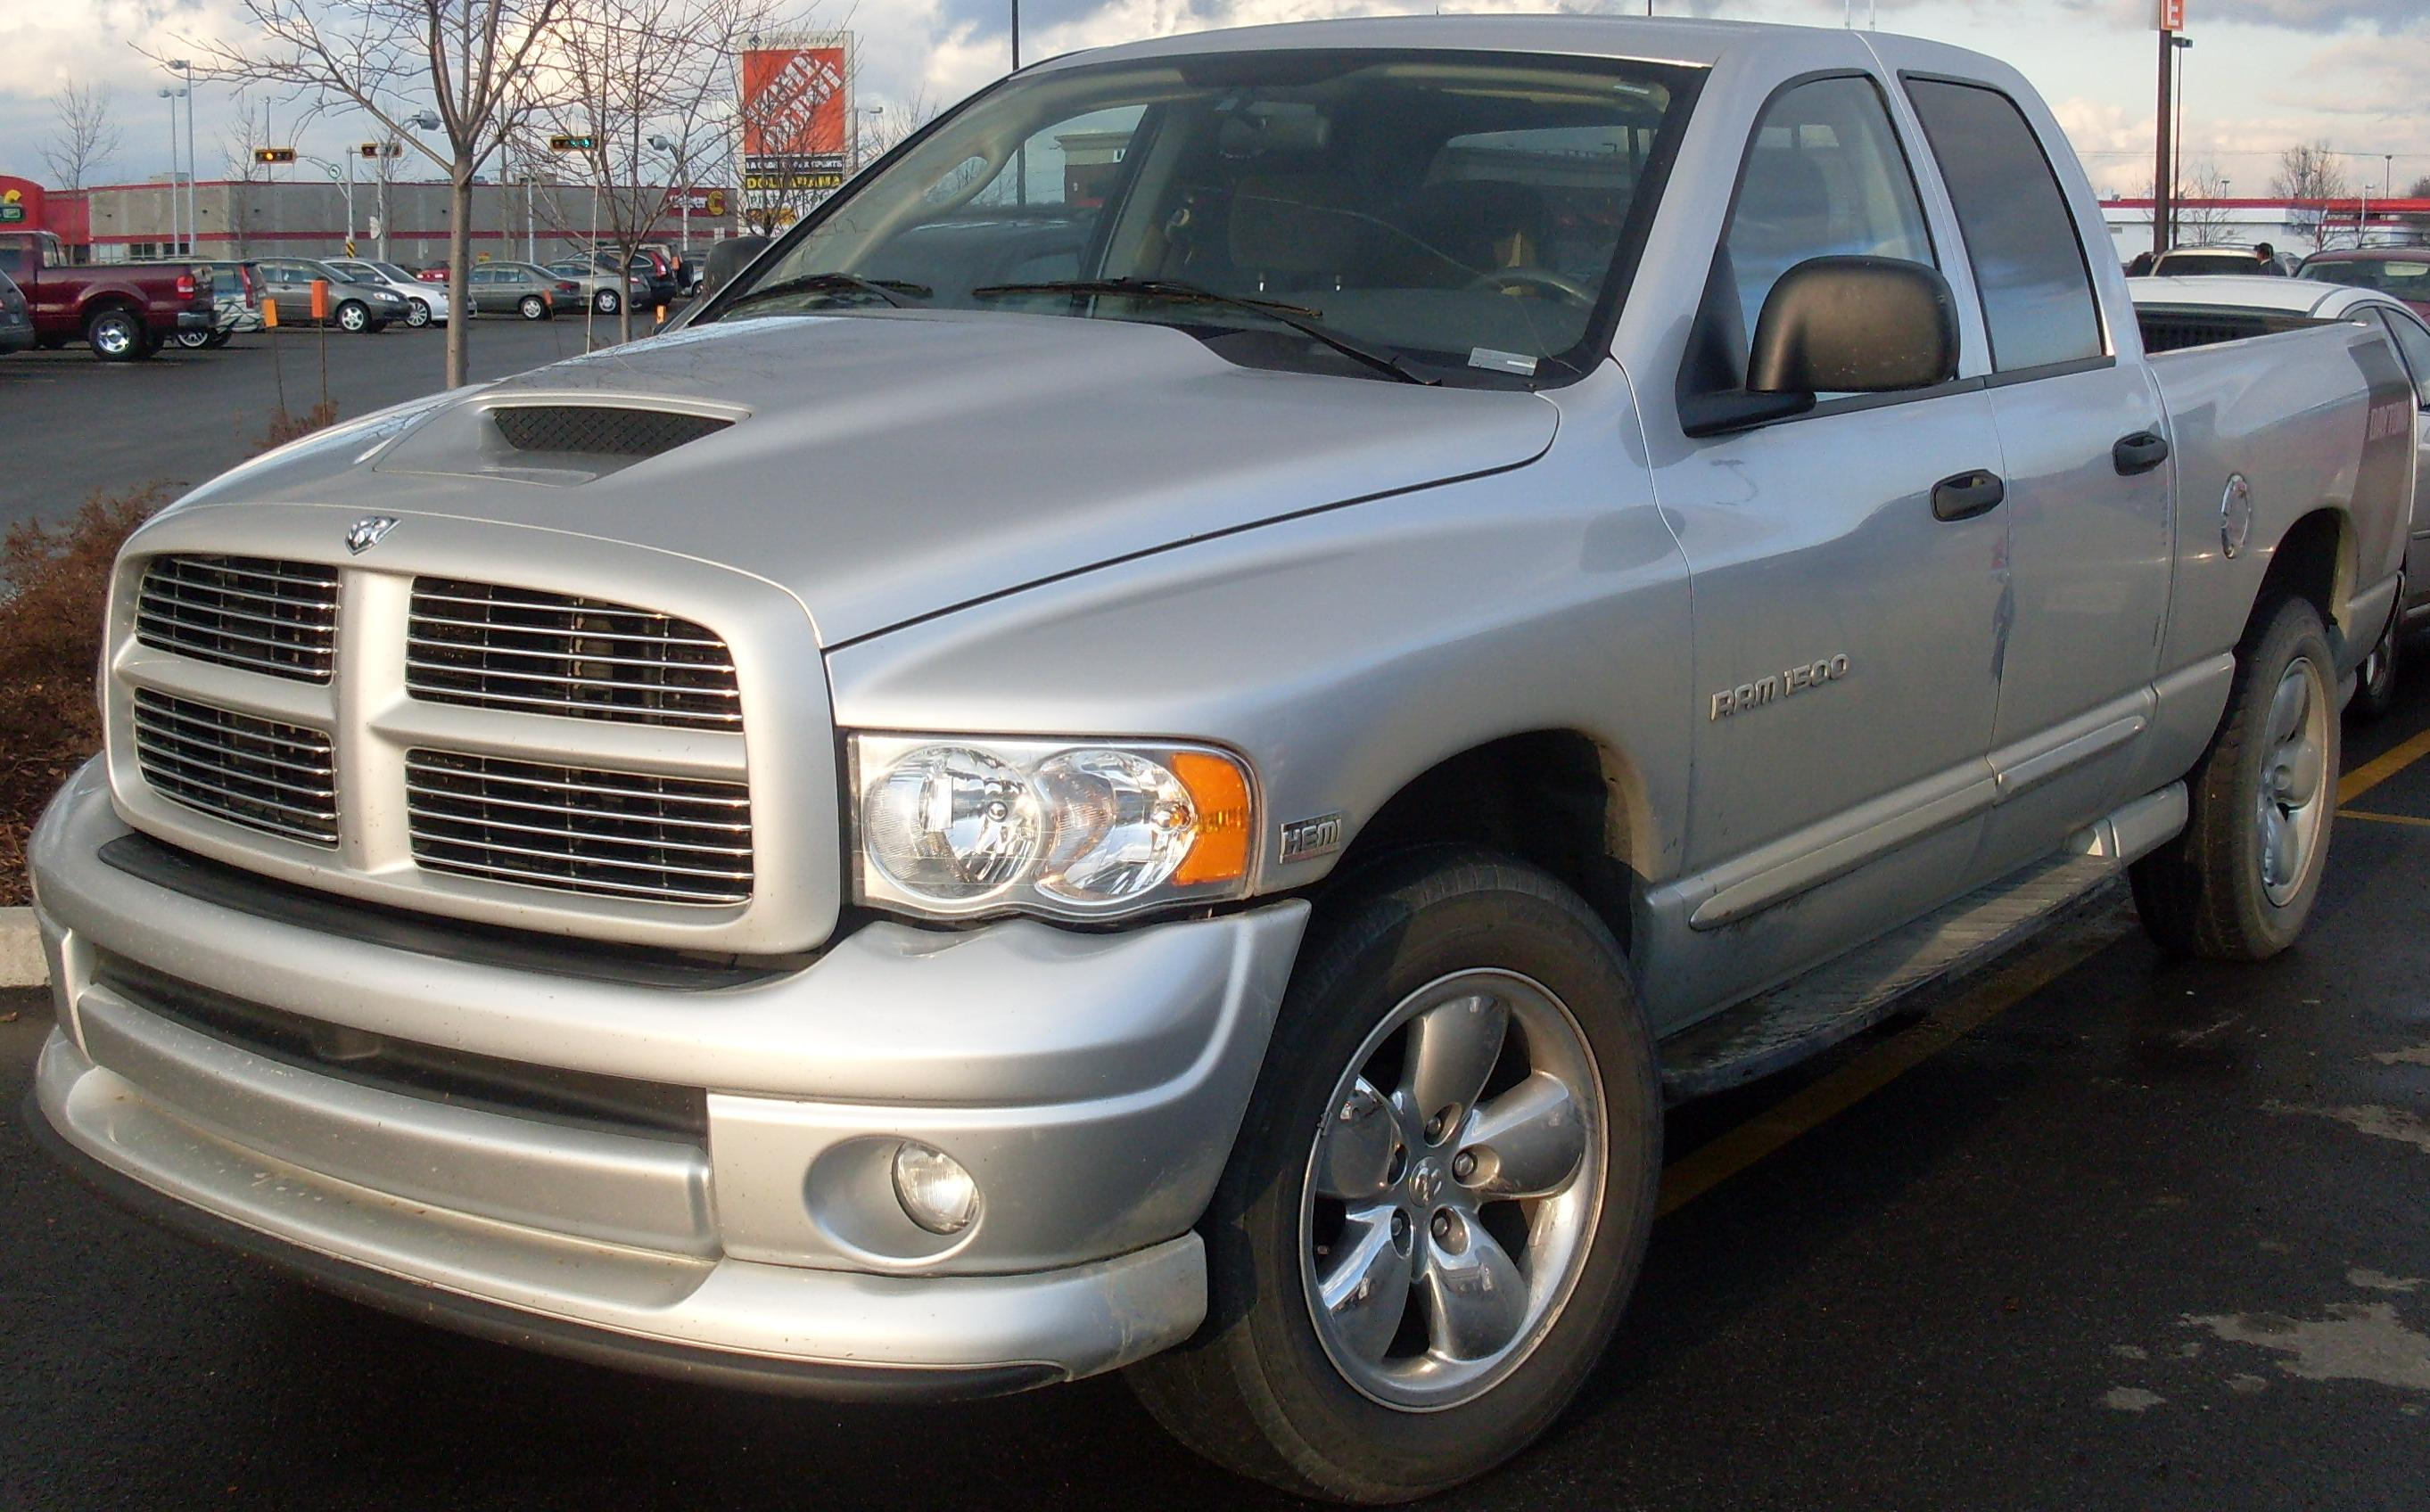 Nothing found for 2012 Dodge Ram 1500 Single Cab Rt